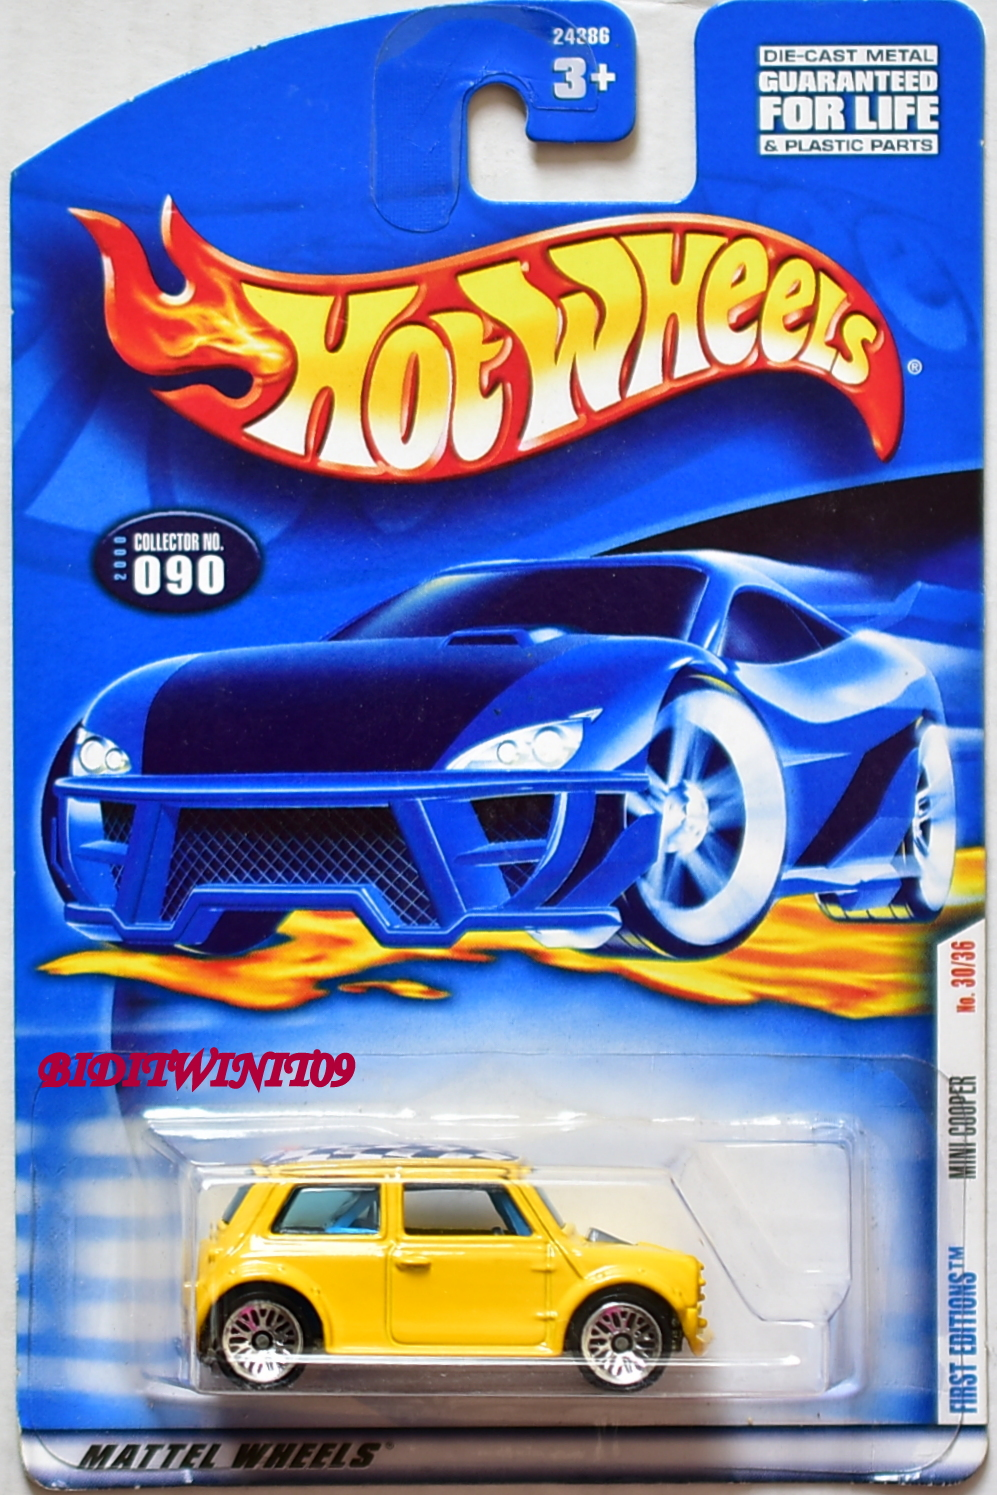 HOT WHEELS 2000 FIRST EDITIONS MINI COOPER #090 YELLOW